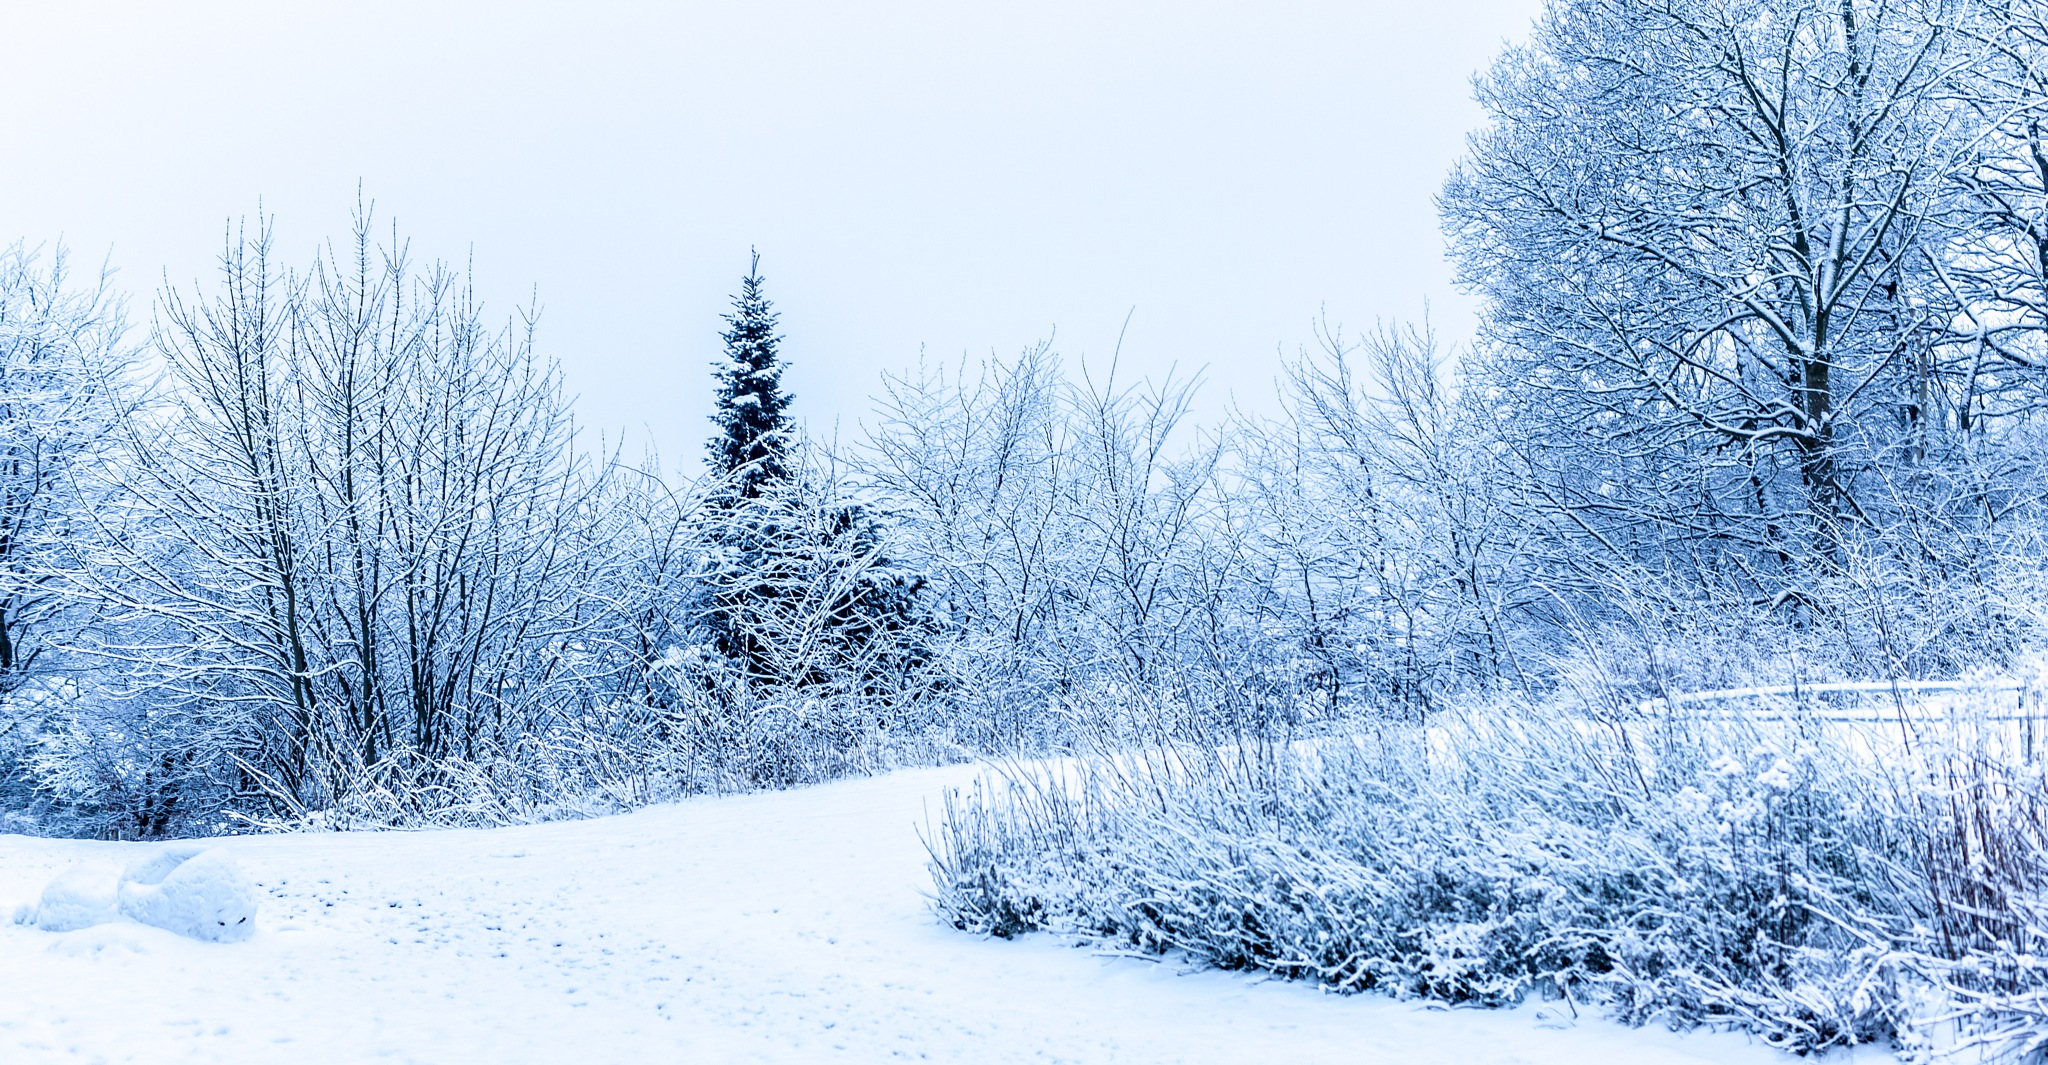 Winterland by Mads Nielsen